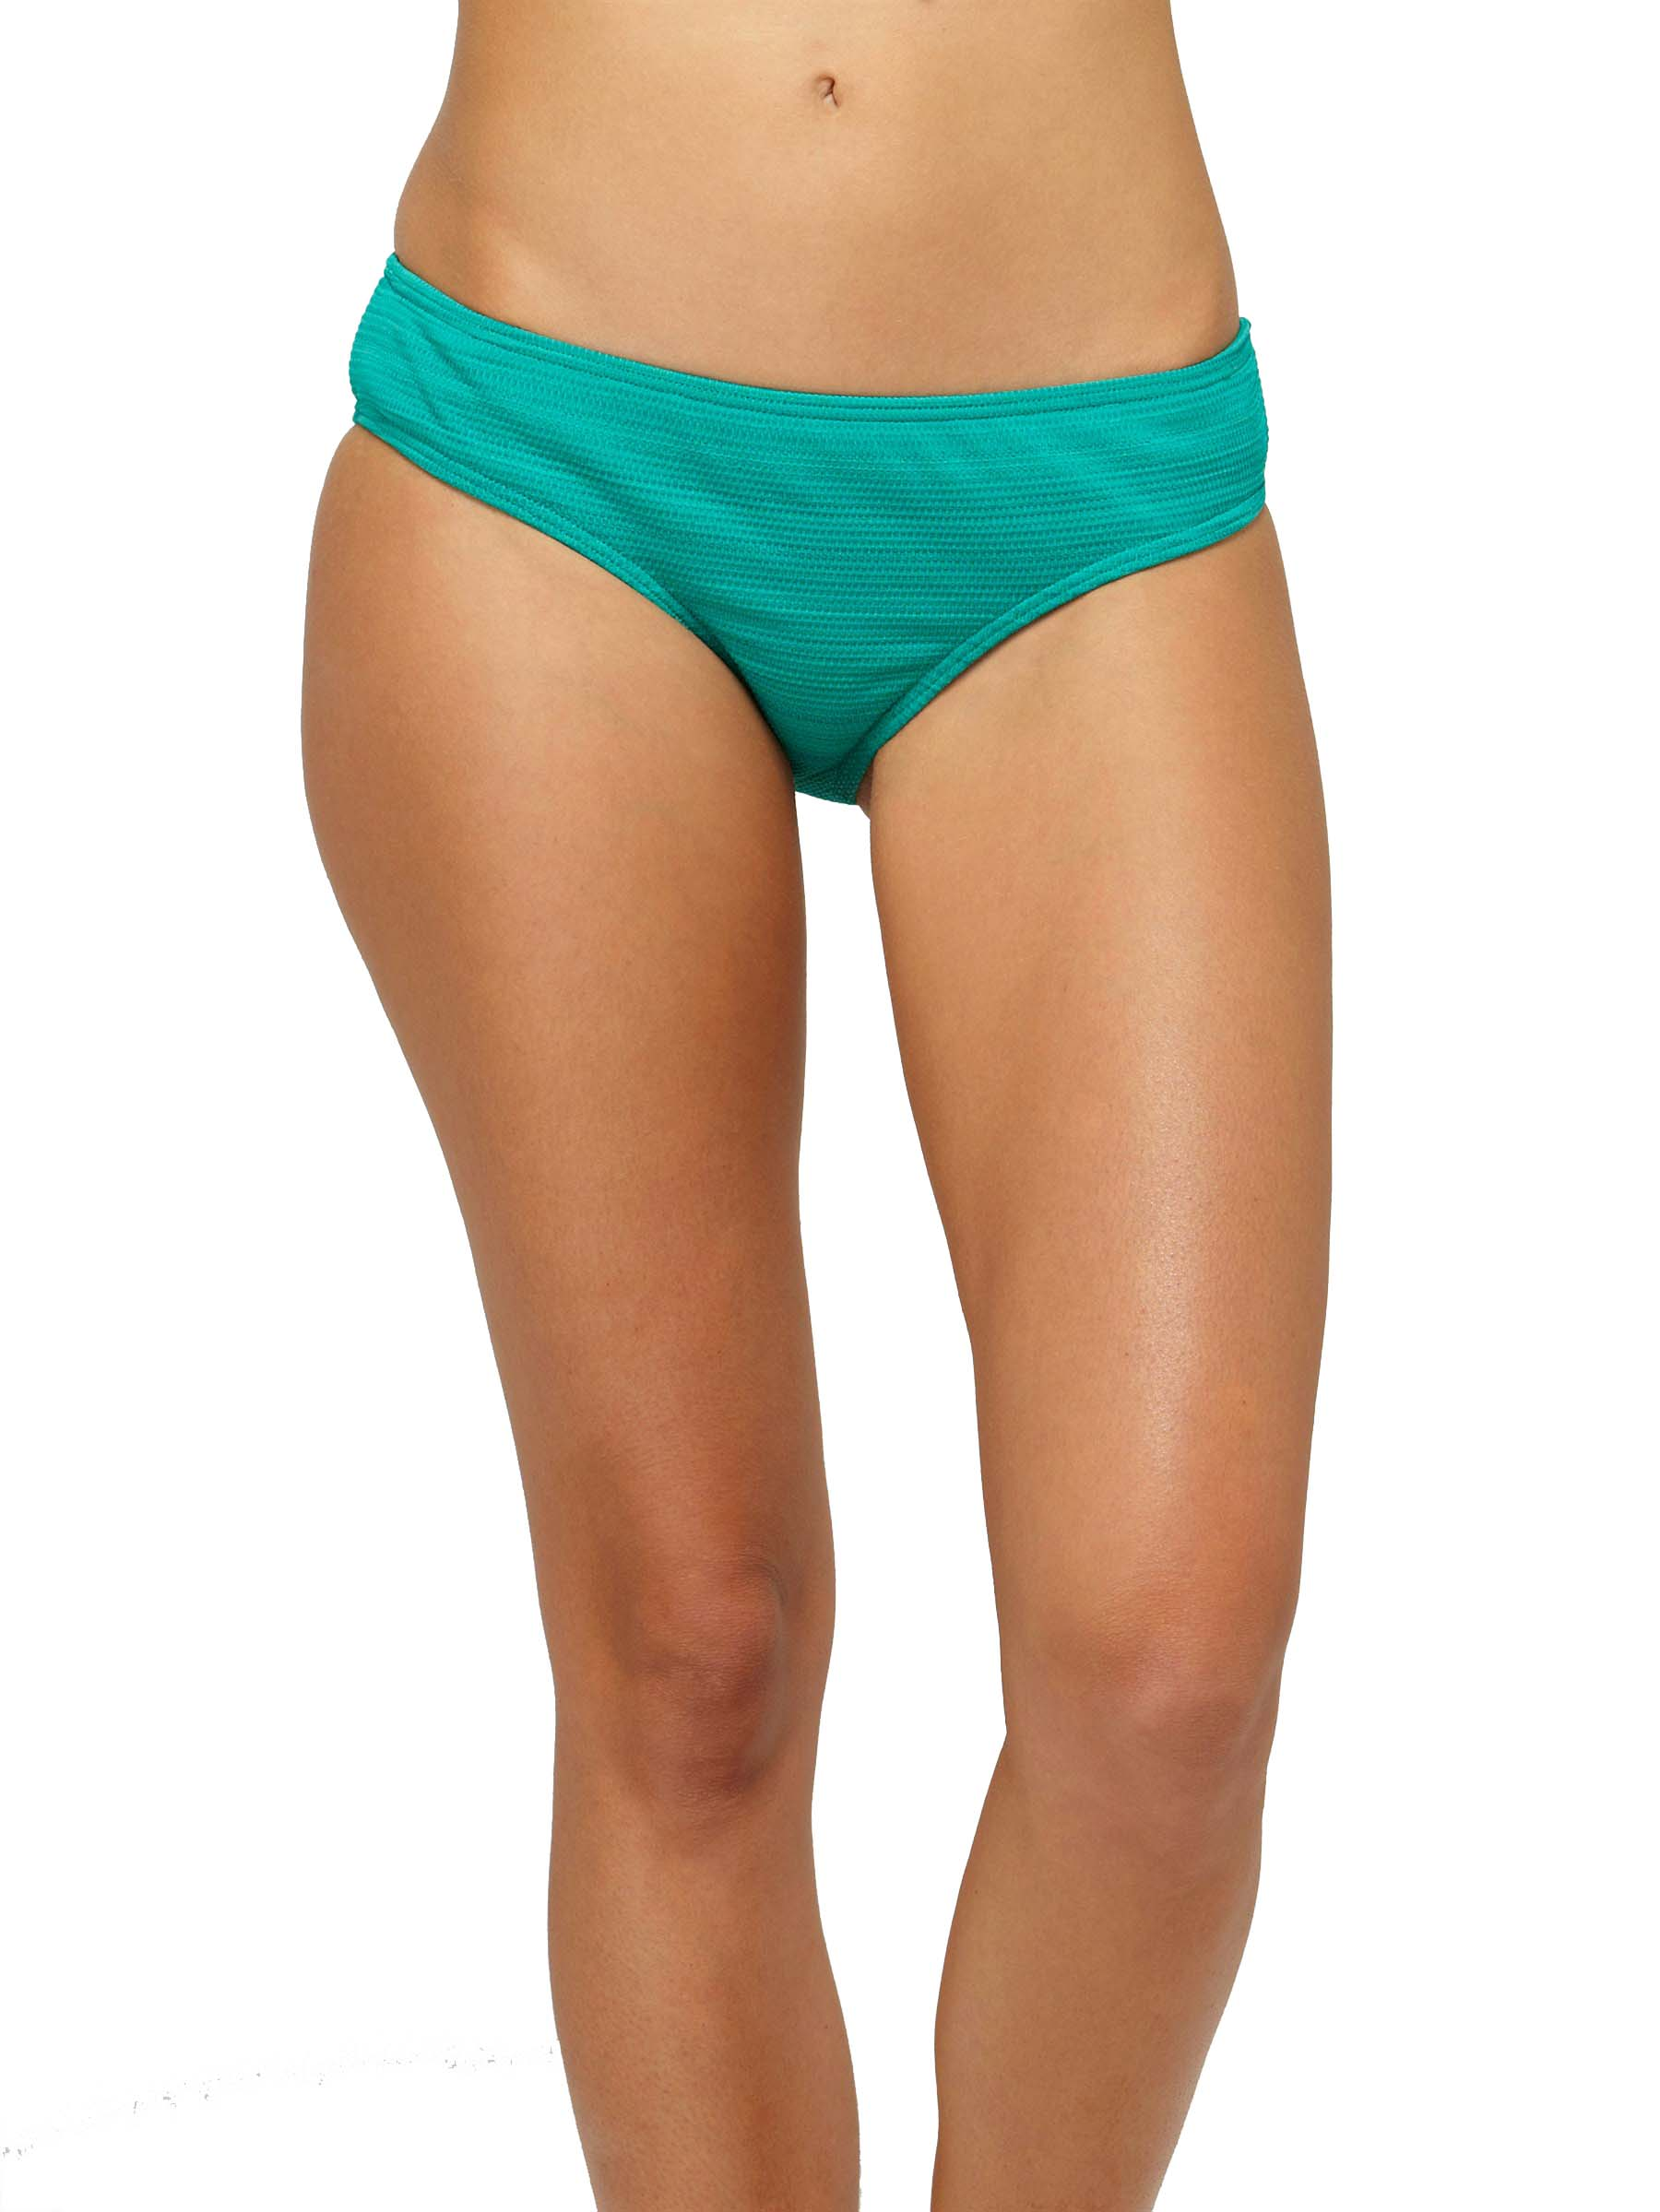 Roxy Juniors Naturally Beautiful 70s Brief Bikini Bottom-Green